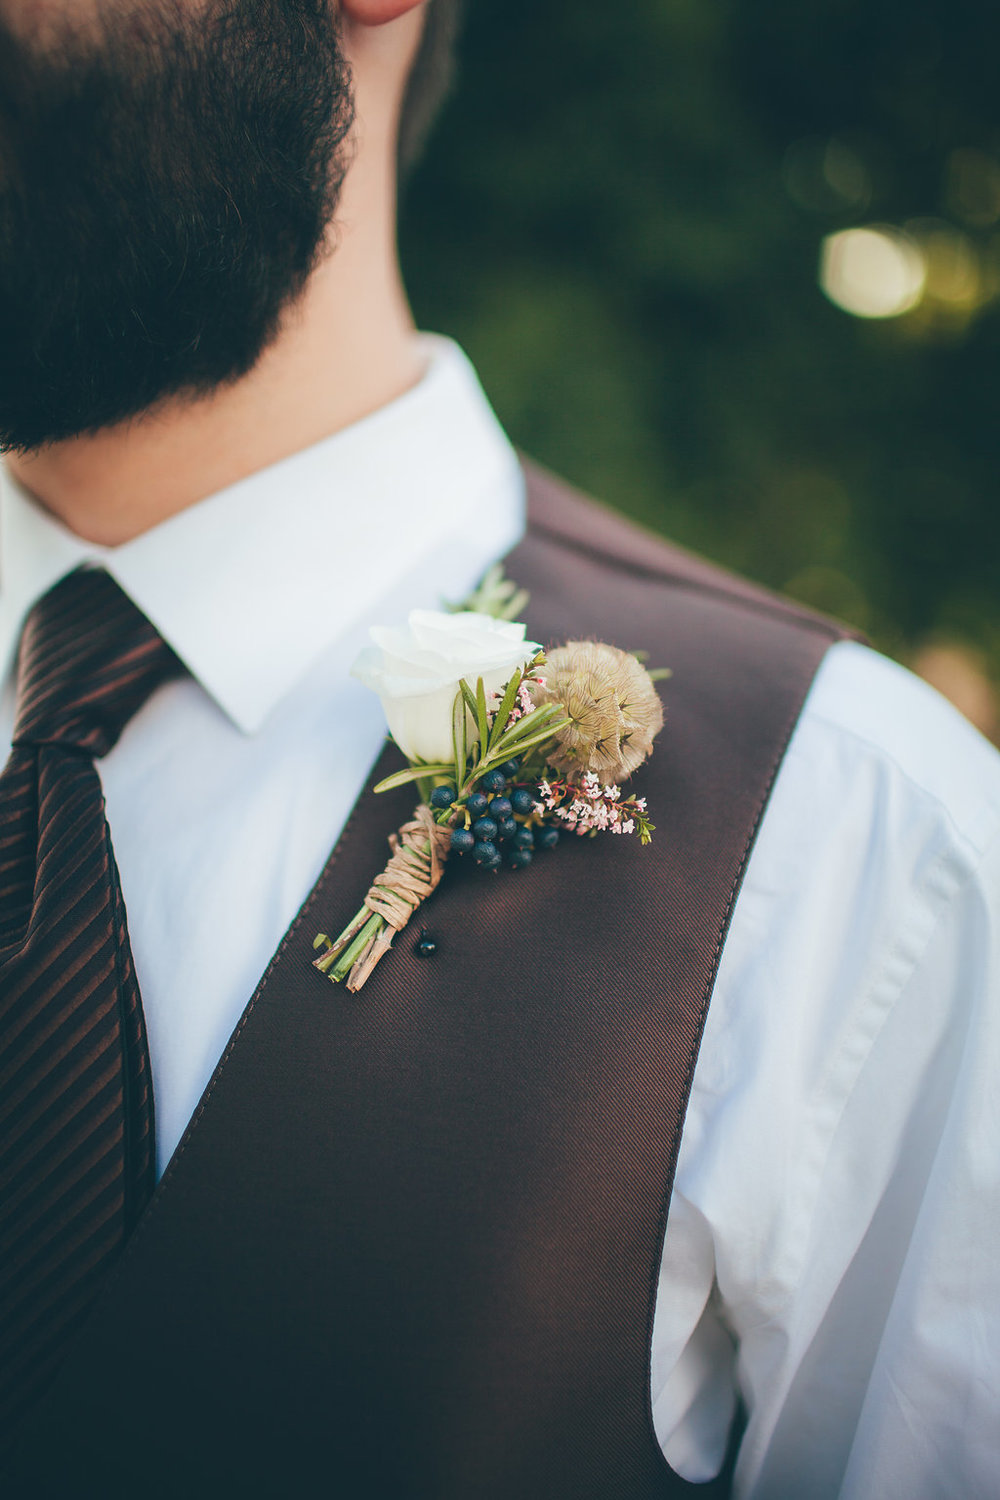 Flowers by Lace and Lilies, white spray rose, scabiosa pod and previt berry boutonniere, brown vest groom